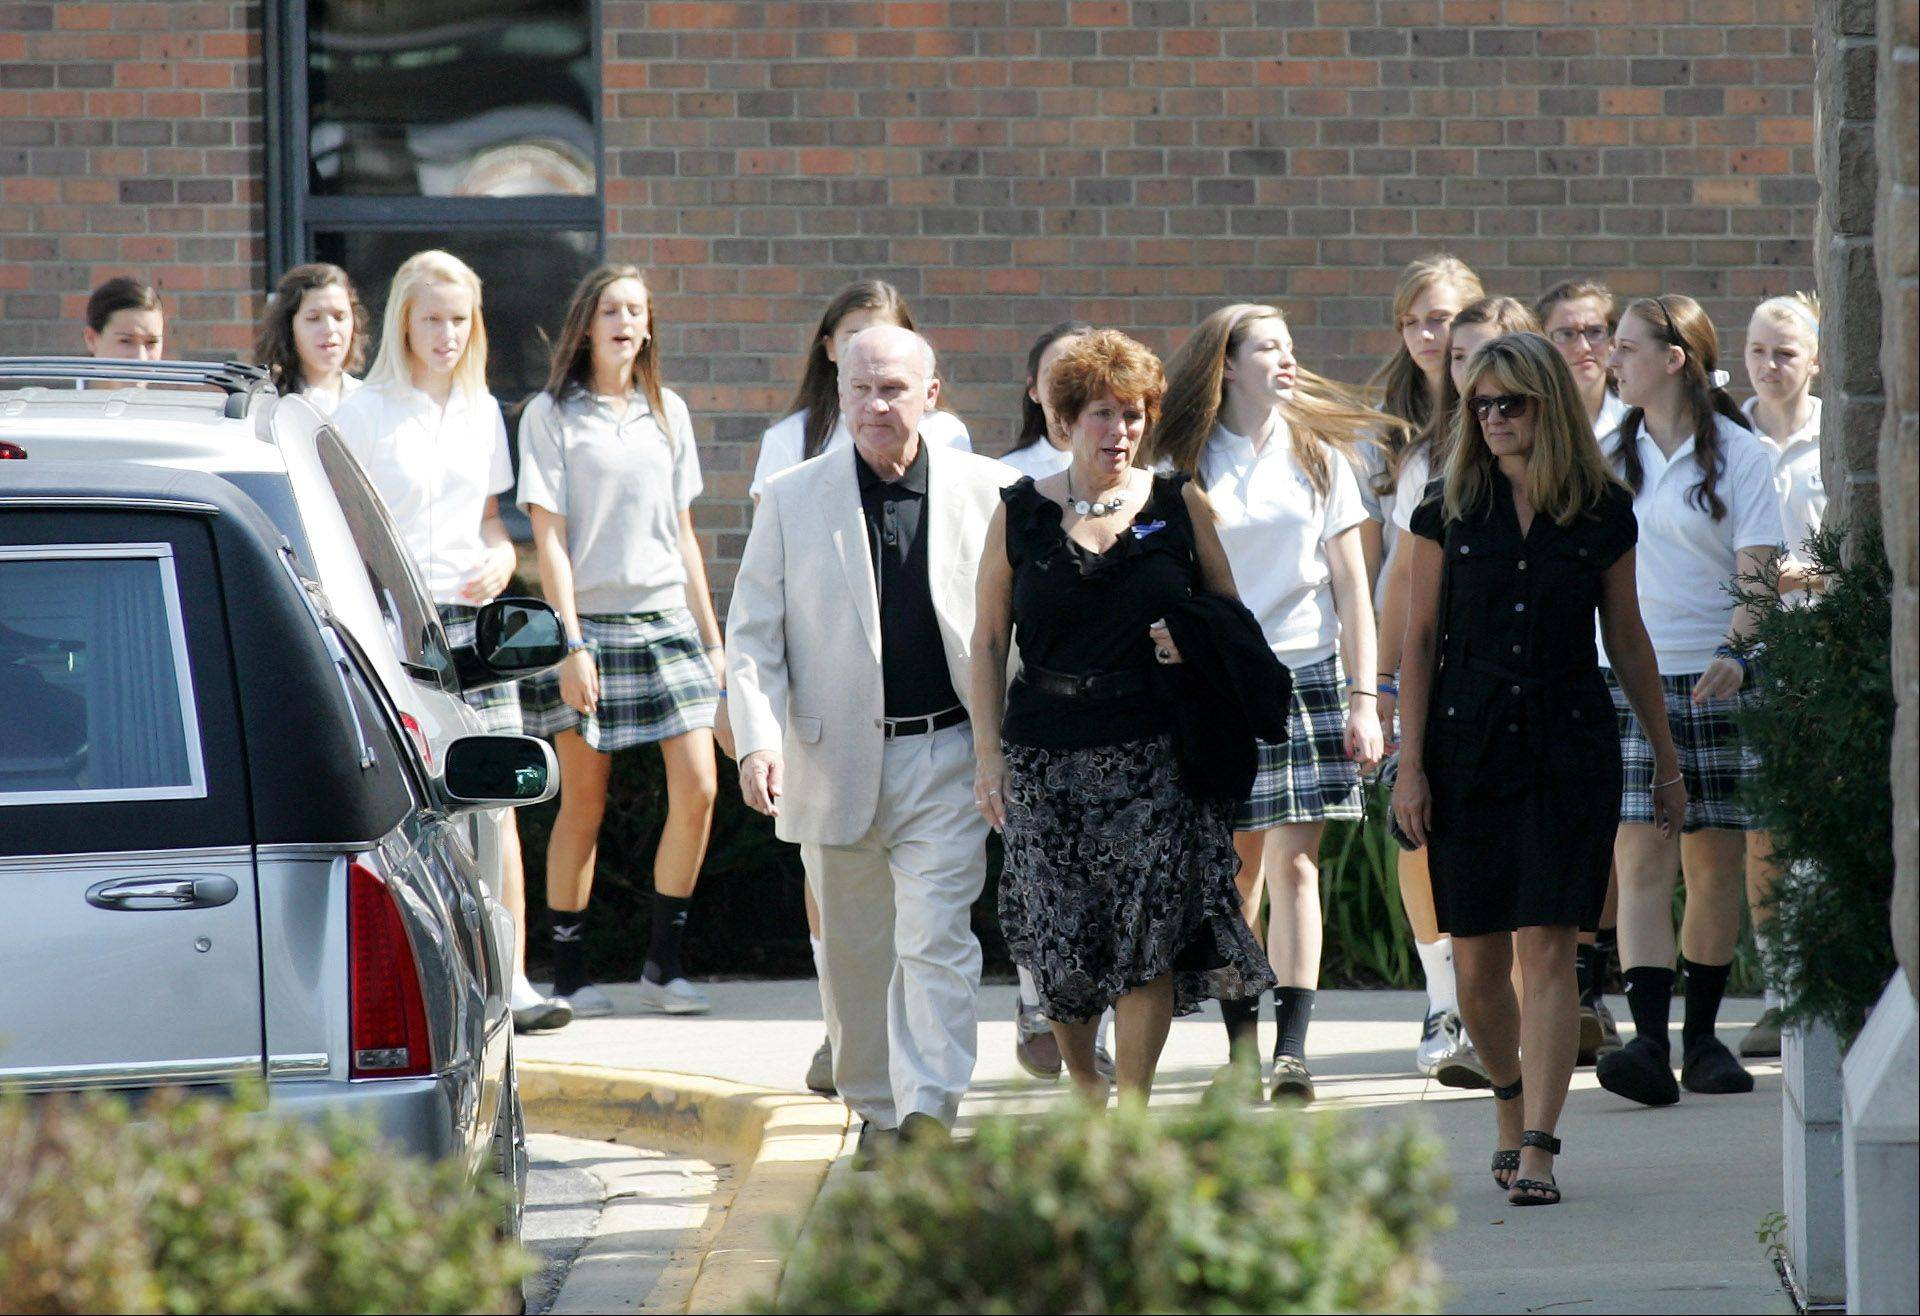 St. Francis High School volleyball coach Peg Kopec, center, and students from the school arrive for the funeral of Megan Boken at St. Michael Church in Wheaton on Thursday.